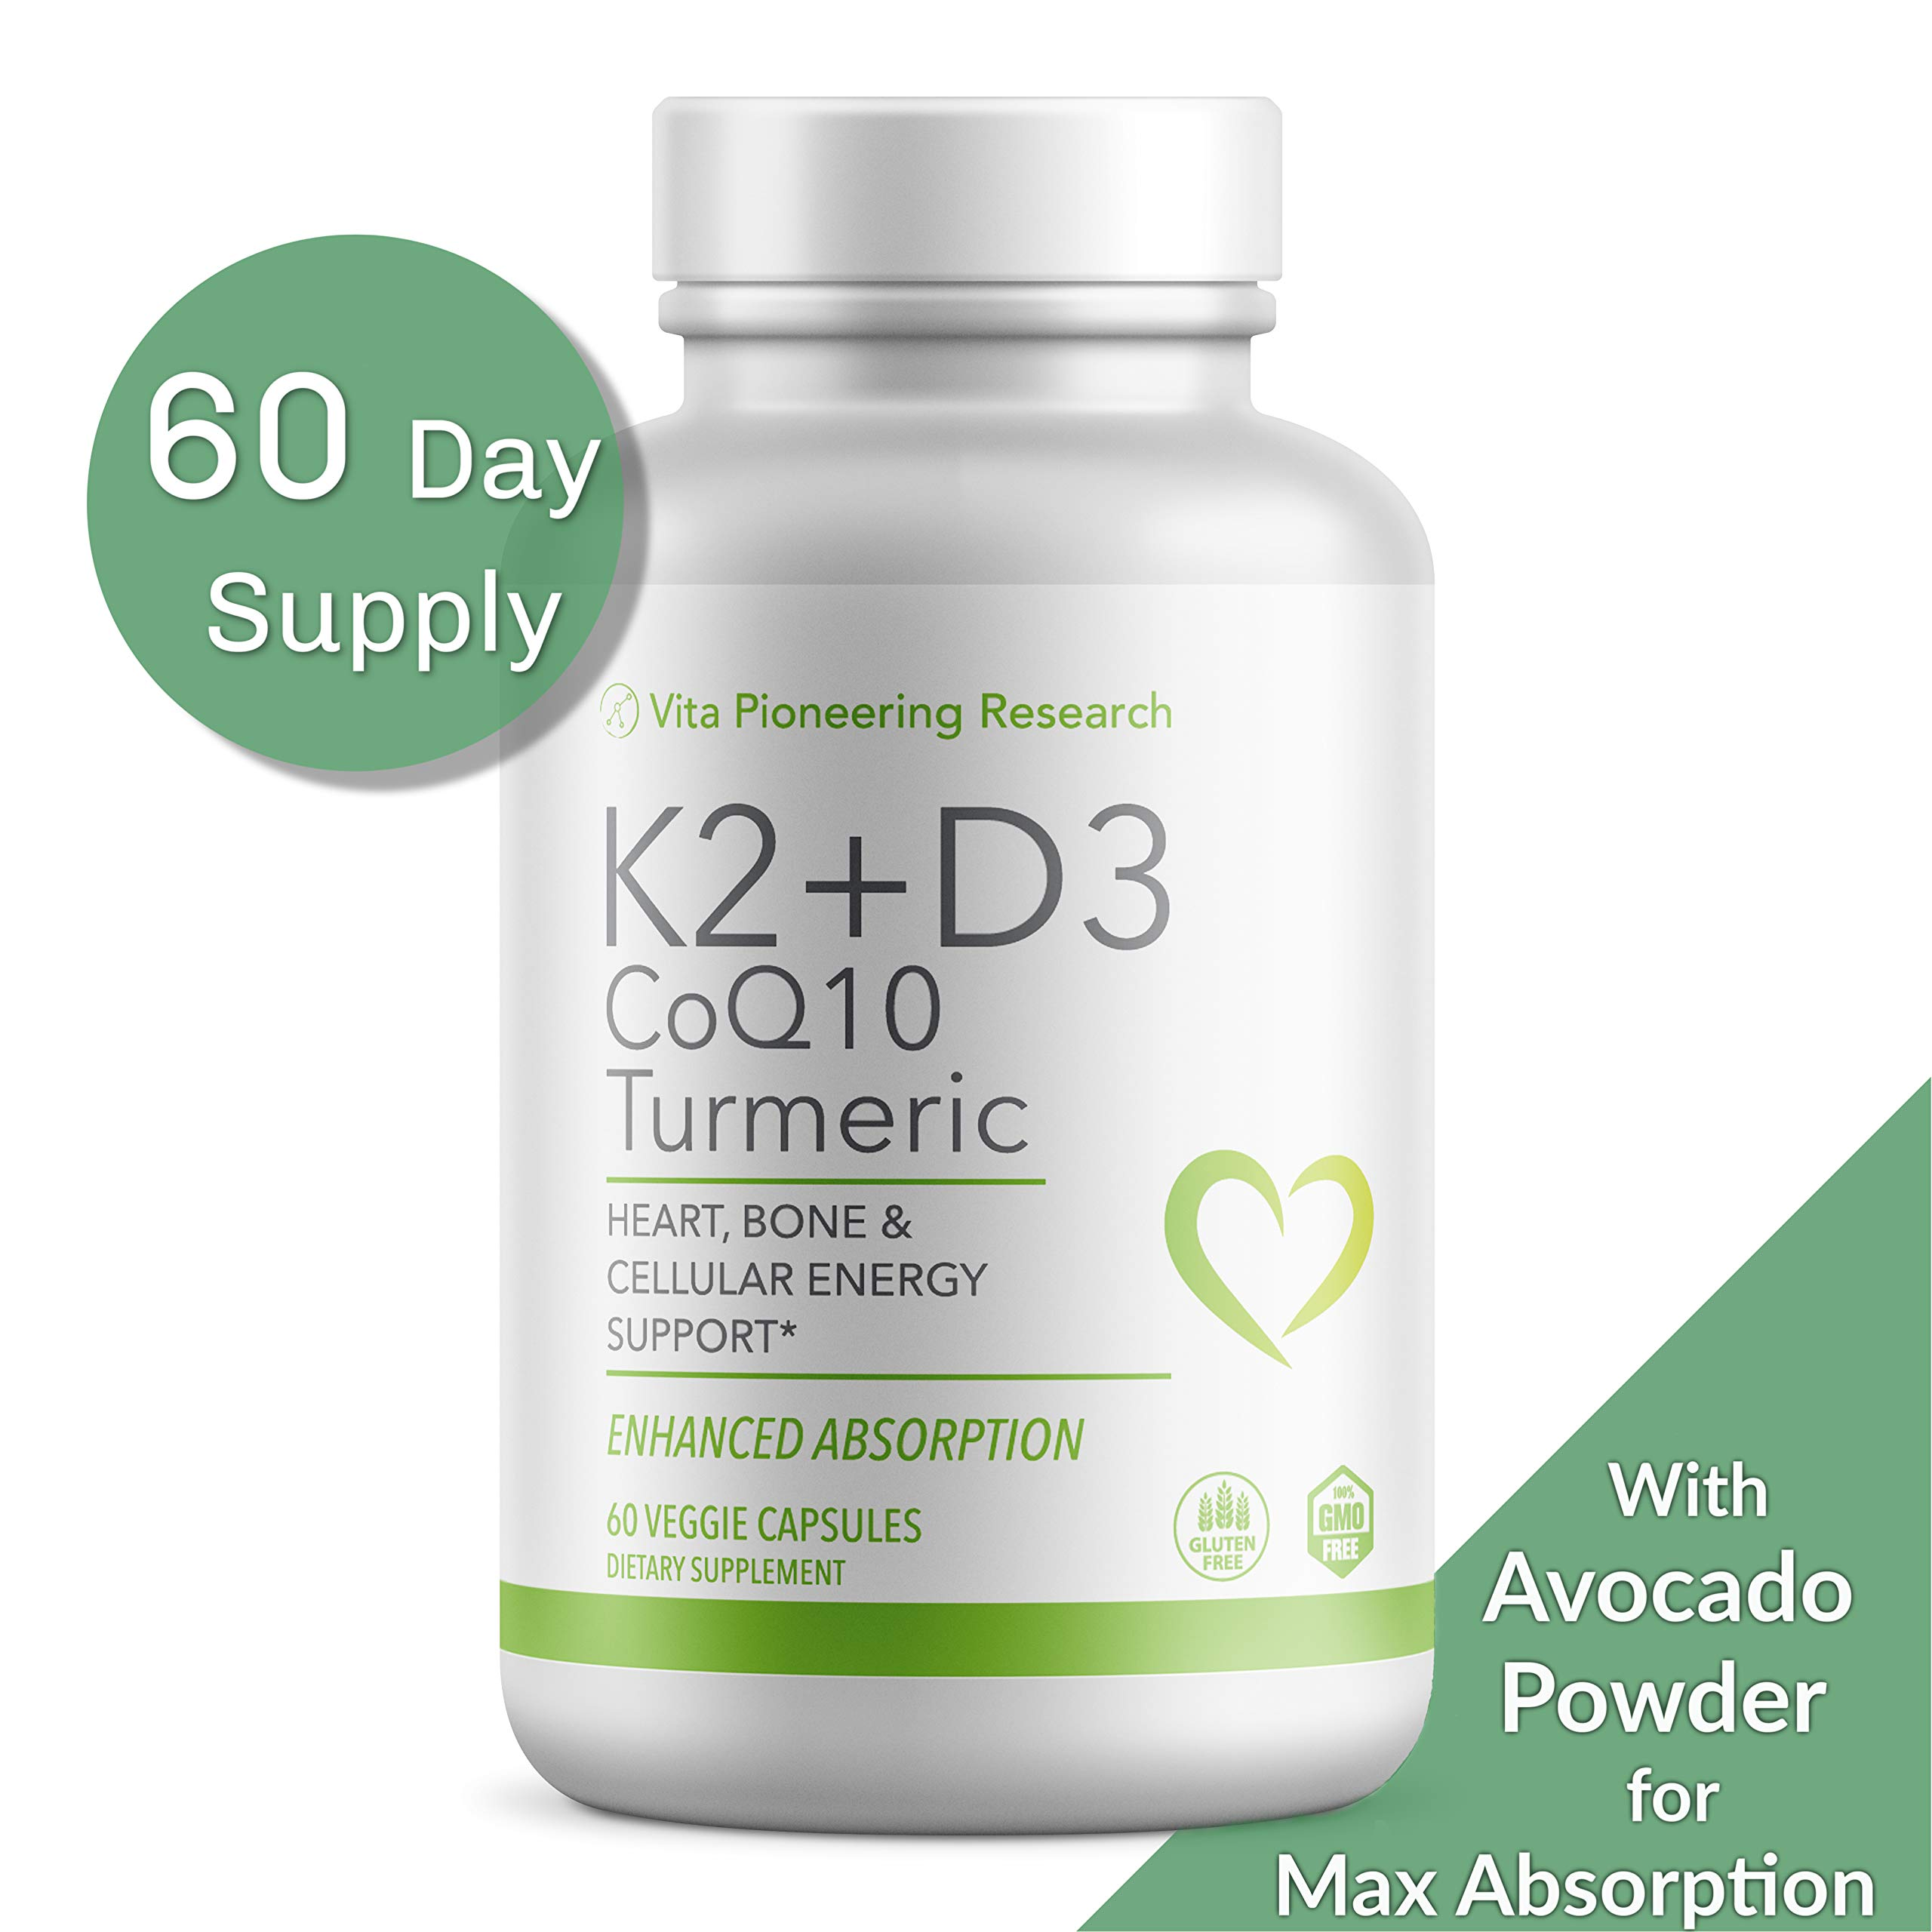 Vitamin D3 2000IU and K2 with Turmeric and COQ10 - Heart, Bone, Cellular Health Support with 10mg Avocado Powder for Better Absorption and Bio-Availability - Non-GMO and Gluten-Free - Two Month Supply